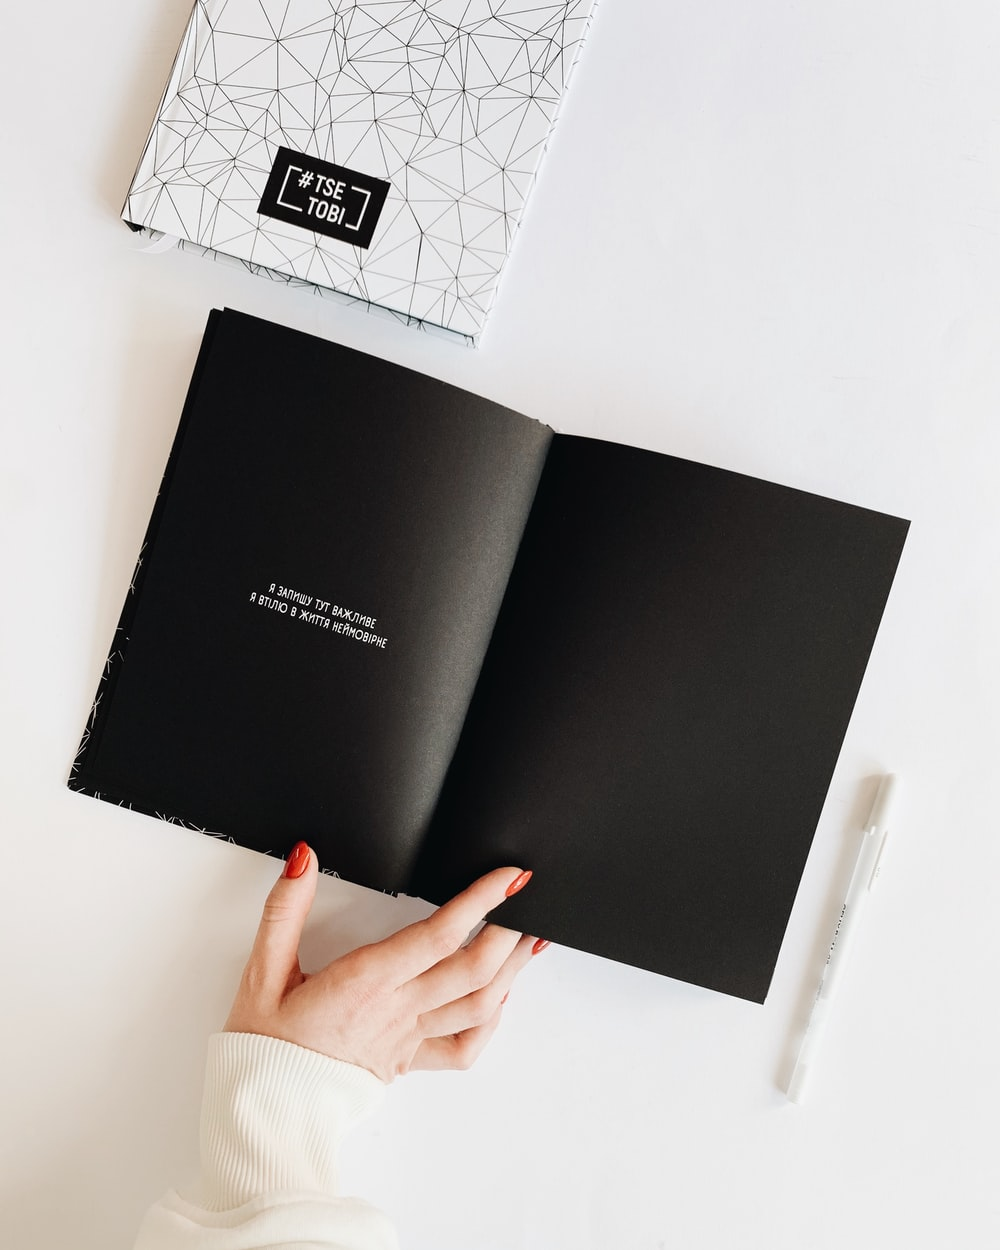 black book on white surface